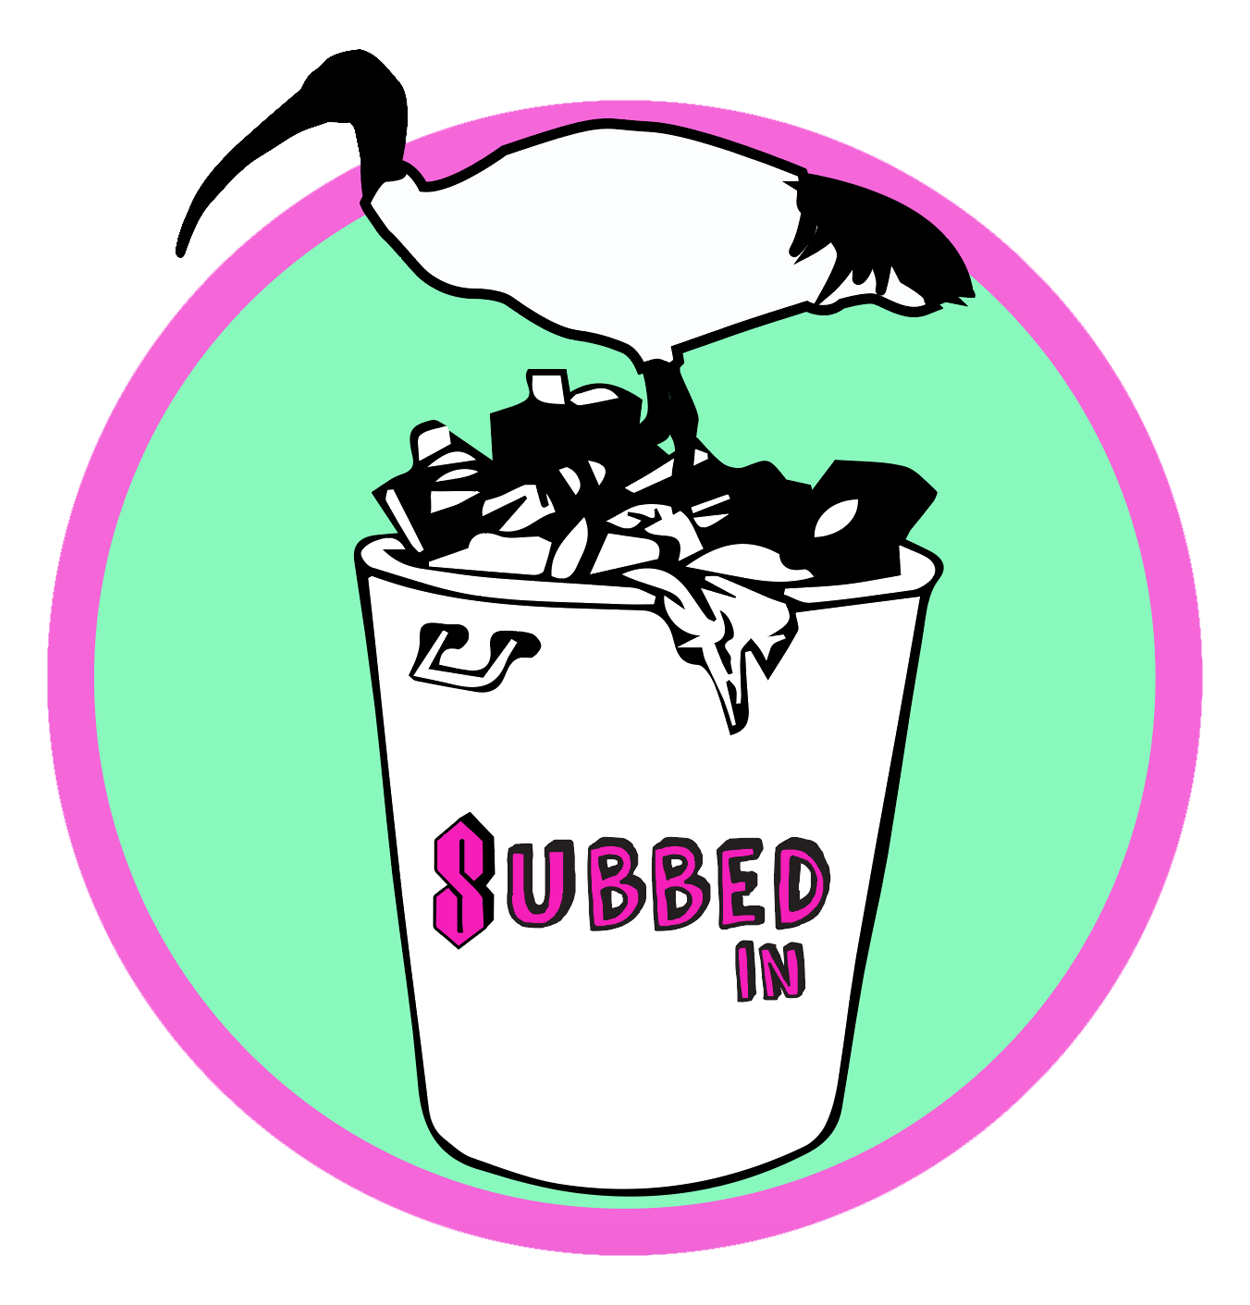 subbed in  is a DIY literary organisation, which programs readings, workshops and associated publications staged around Sydney, Australia. They aim to provide grassroots support for new and underrepresented voices as well as helping emerging writers to achieve publication or performance. They will be selling books and zines from people associated with subbed in.  Find out more here.